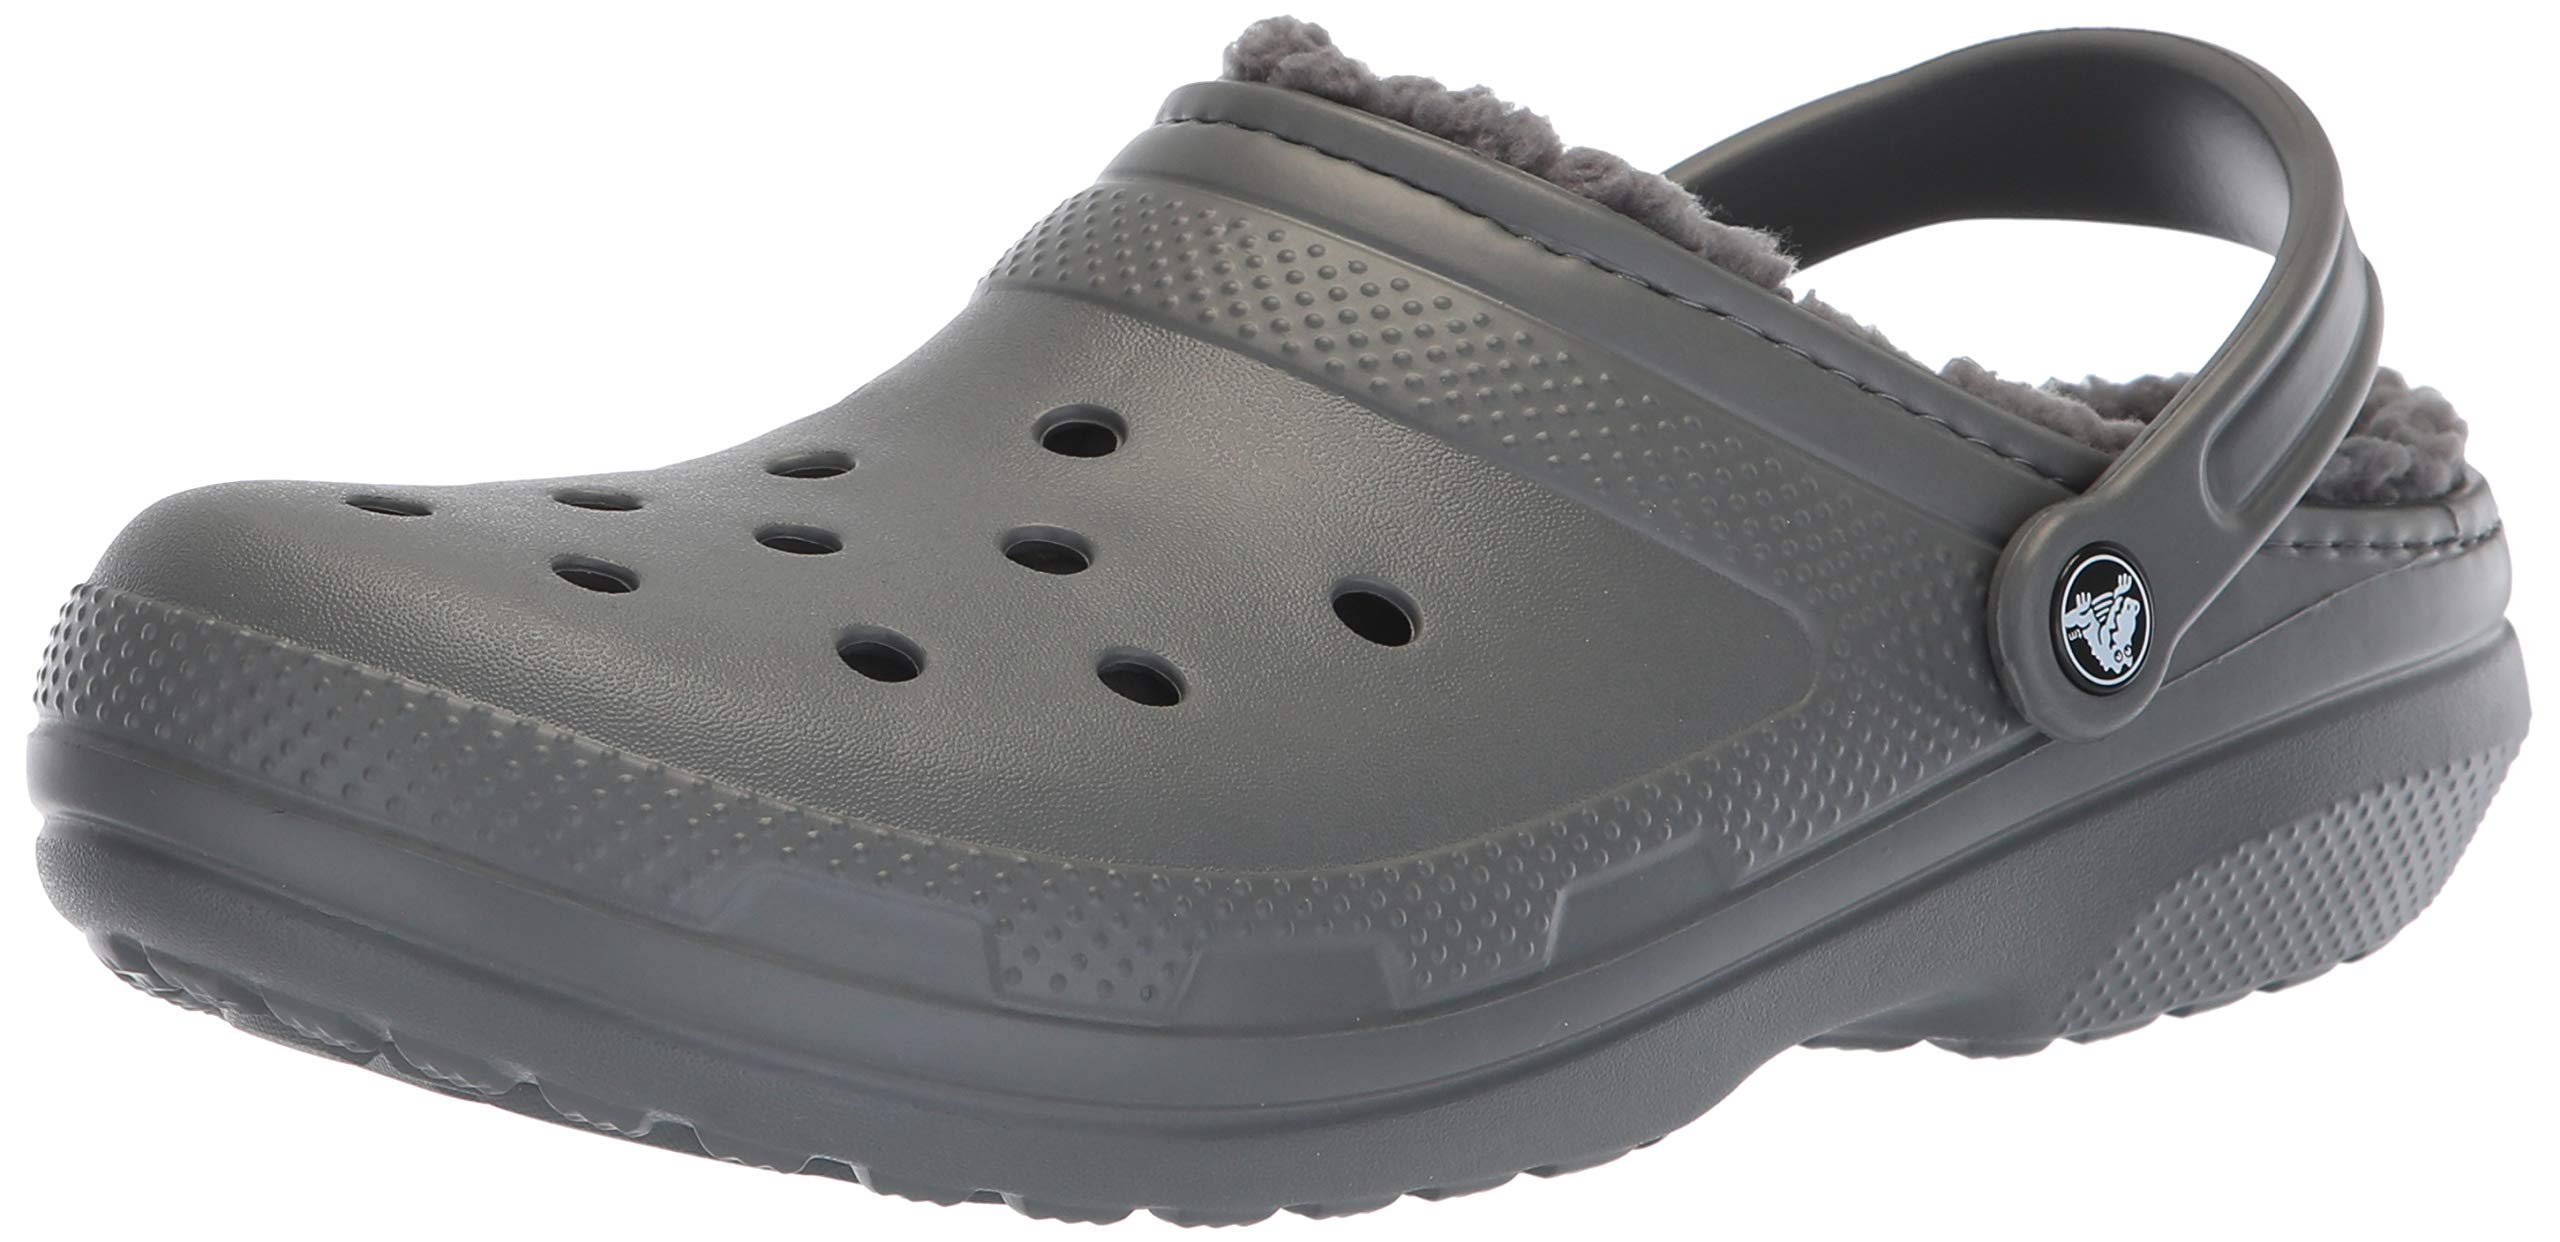 buy online 073be c1746 Crocs Classic Lined Clog, Slate Grey/Smoke, 8 US Men / 10 US Women